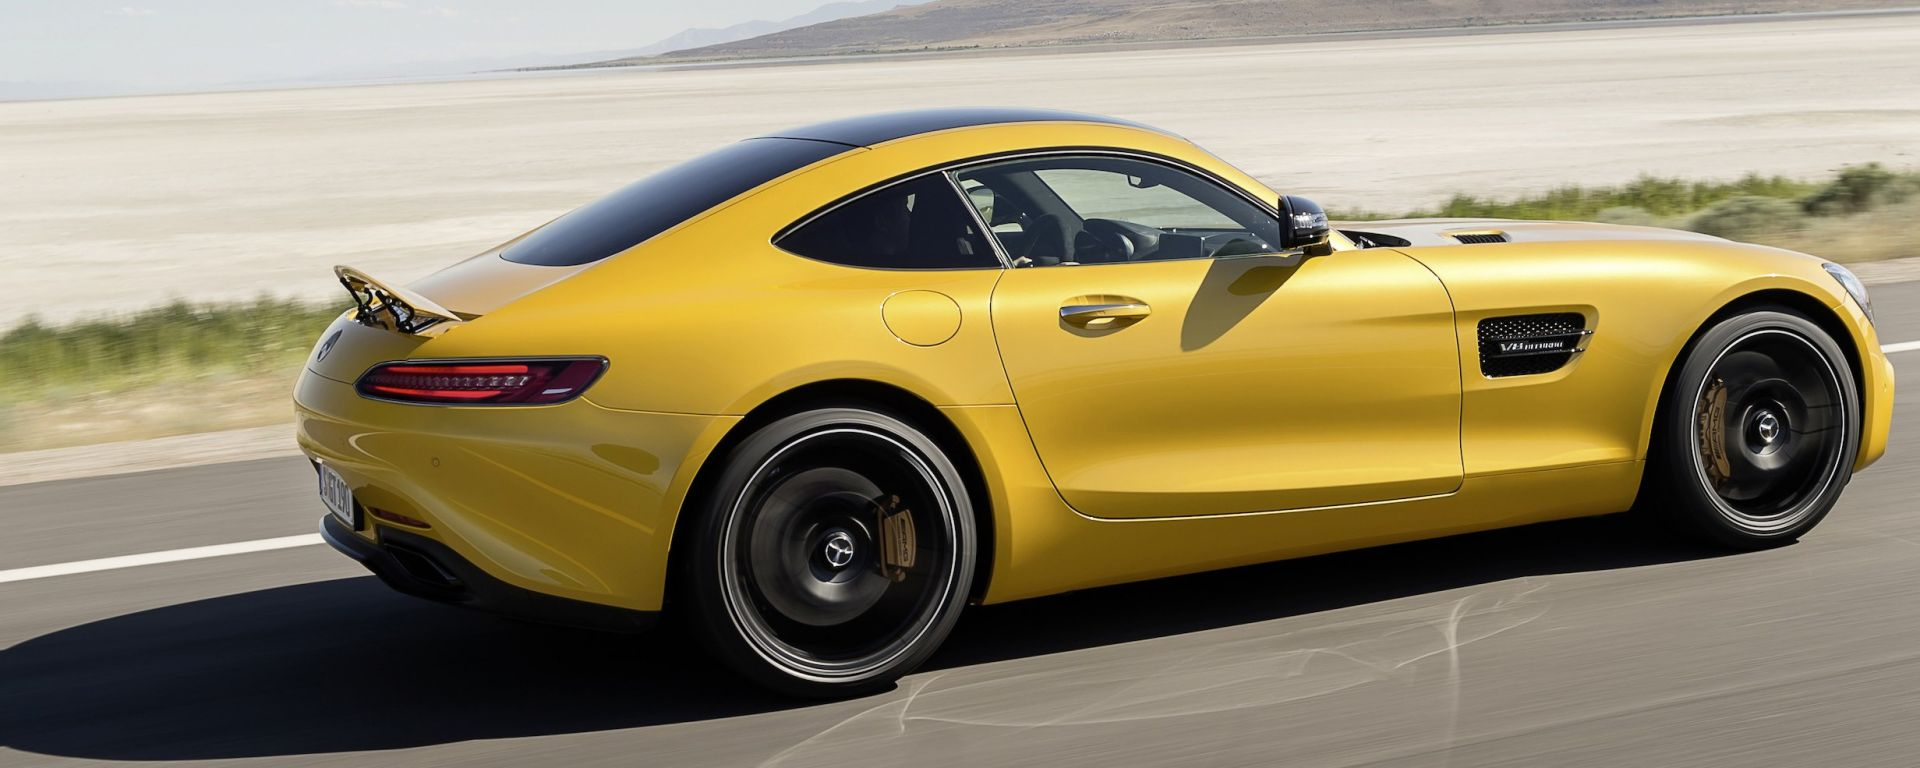 Mercedes-AMG GT S: il video